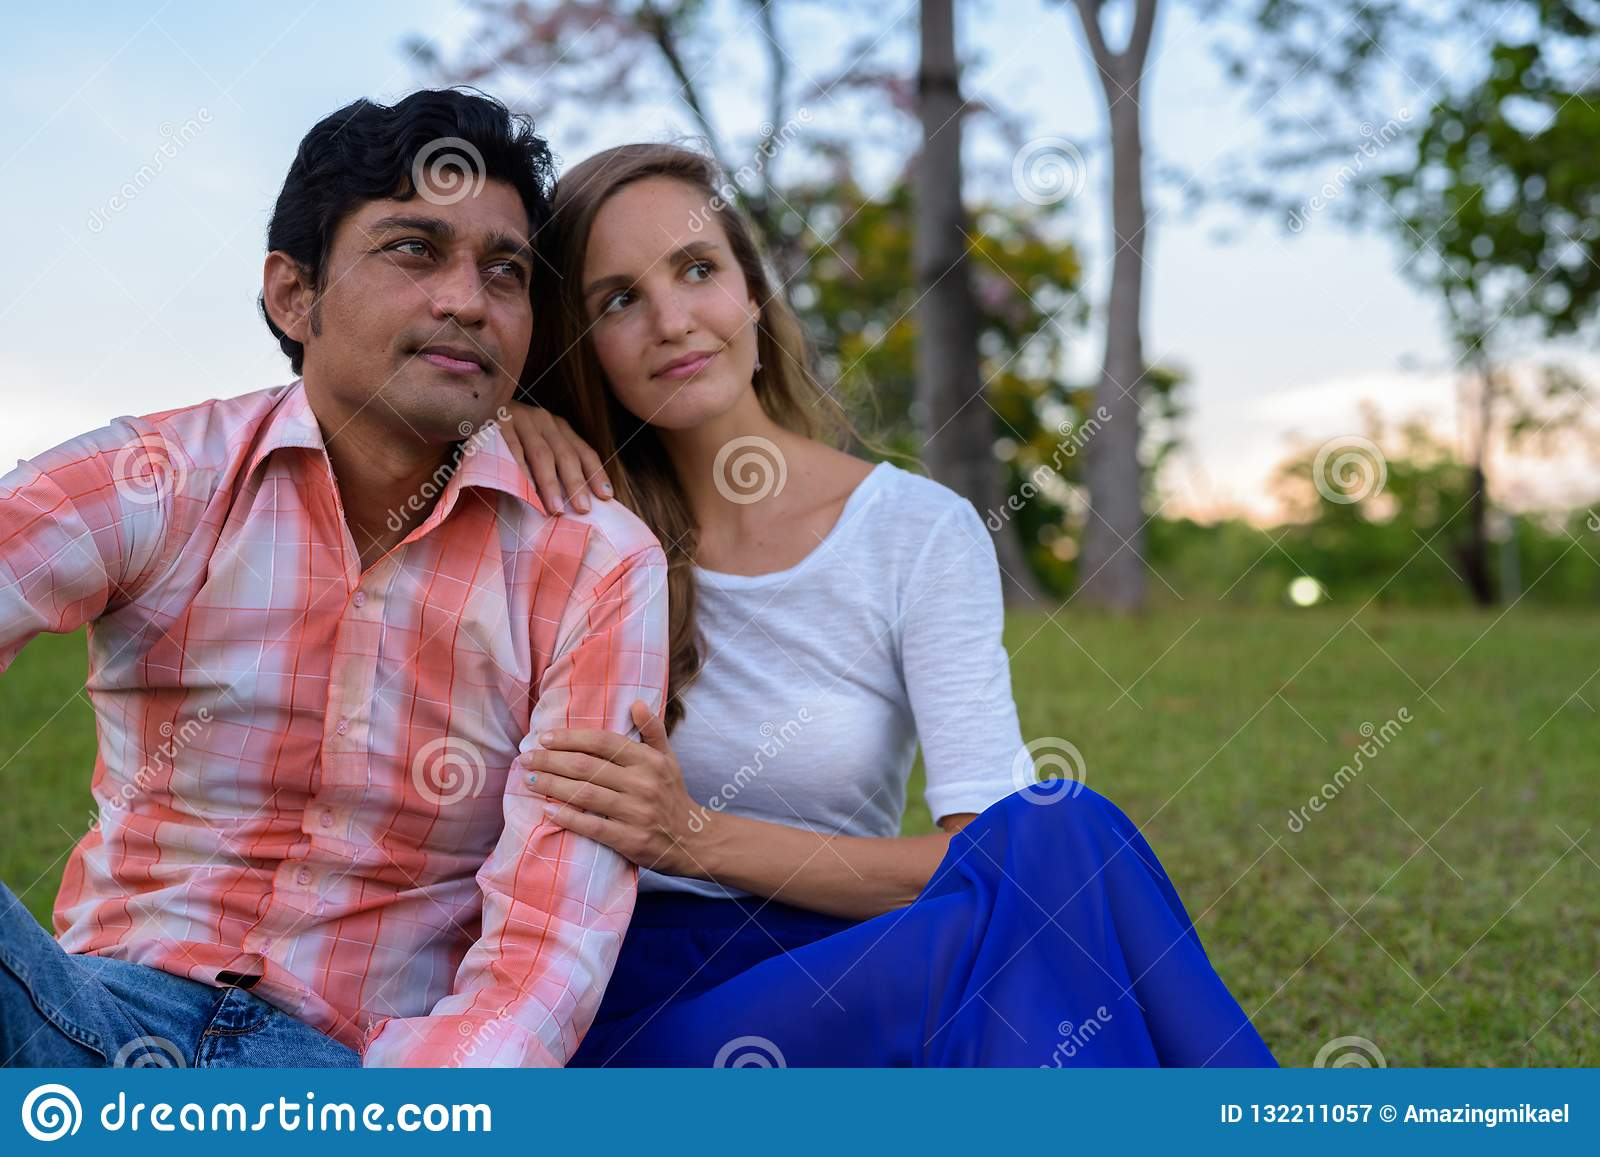 Thinking Love Stock Images - Download 16,544 Royalty Free ...